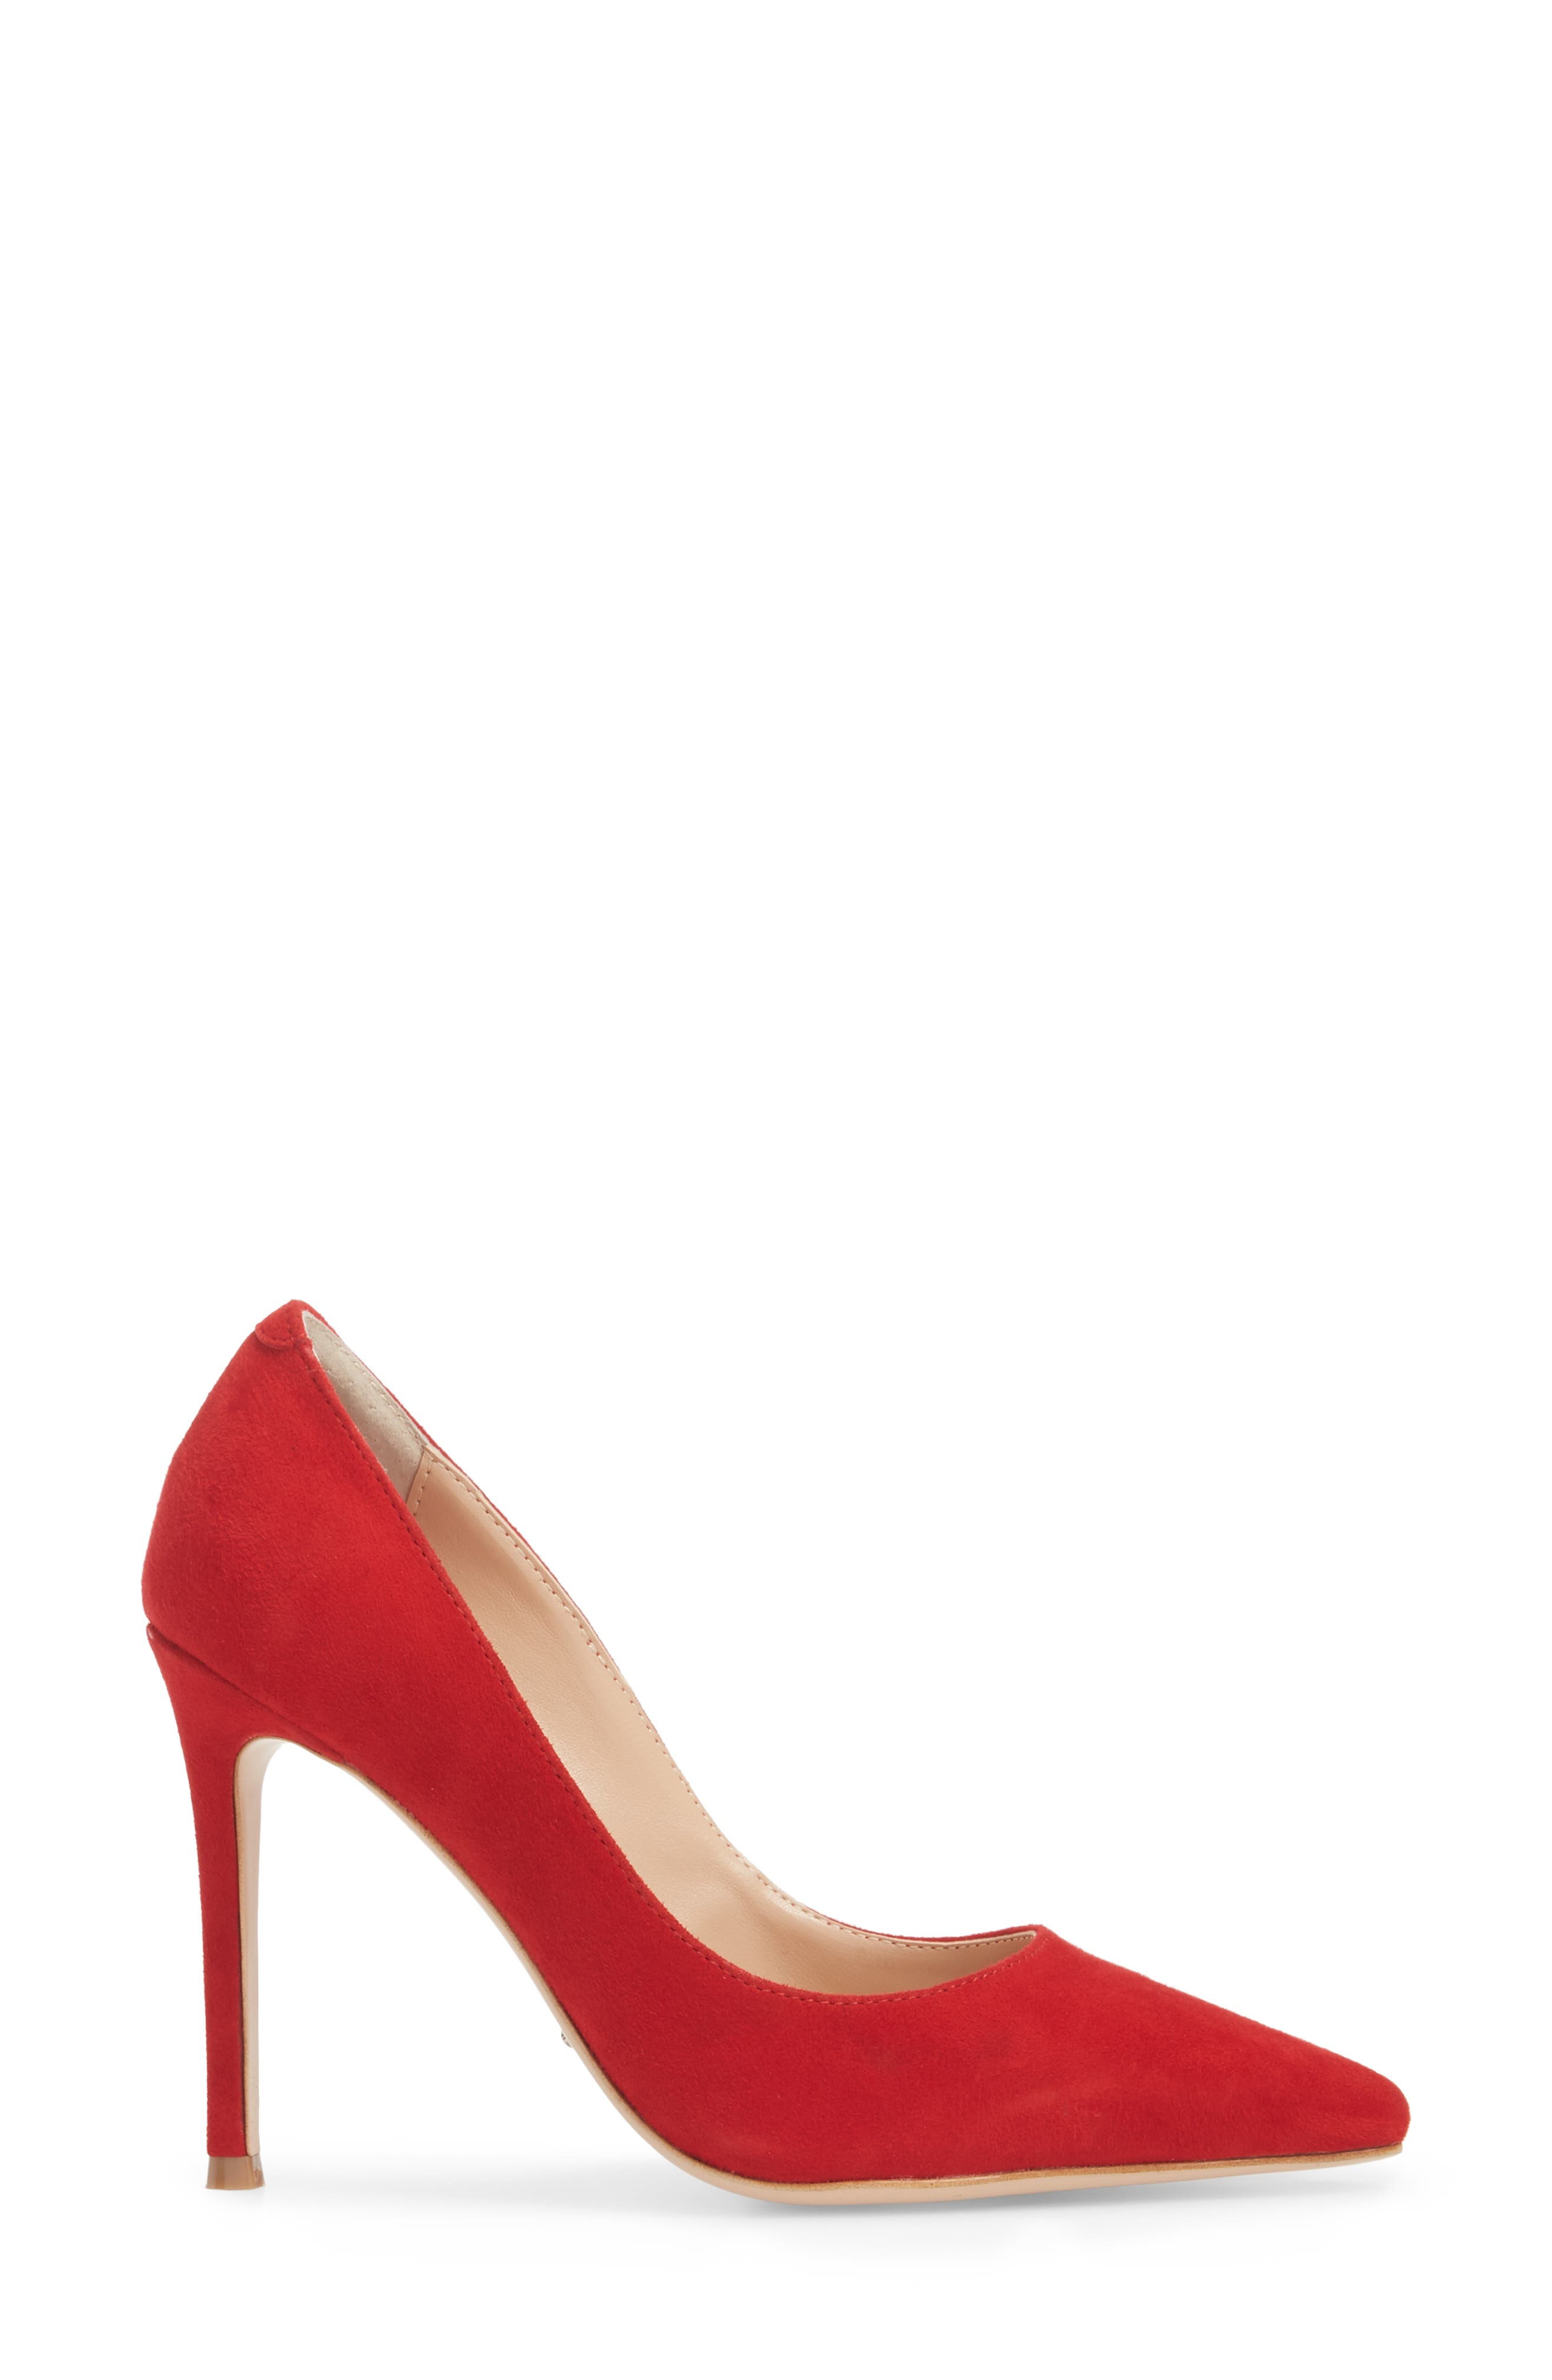 Lotus Pointy Toe Pump,                             Alternate thumbnail 3, color,                             FIRE SUEDE